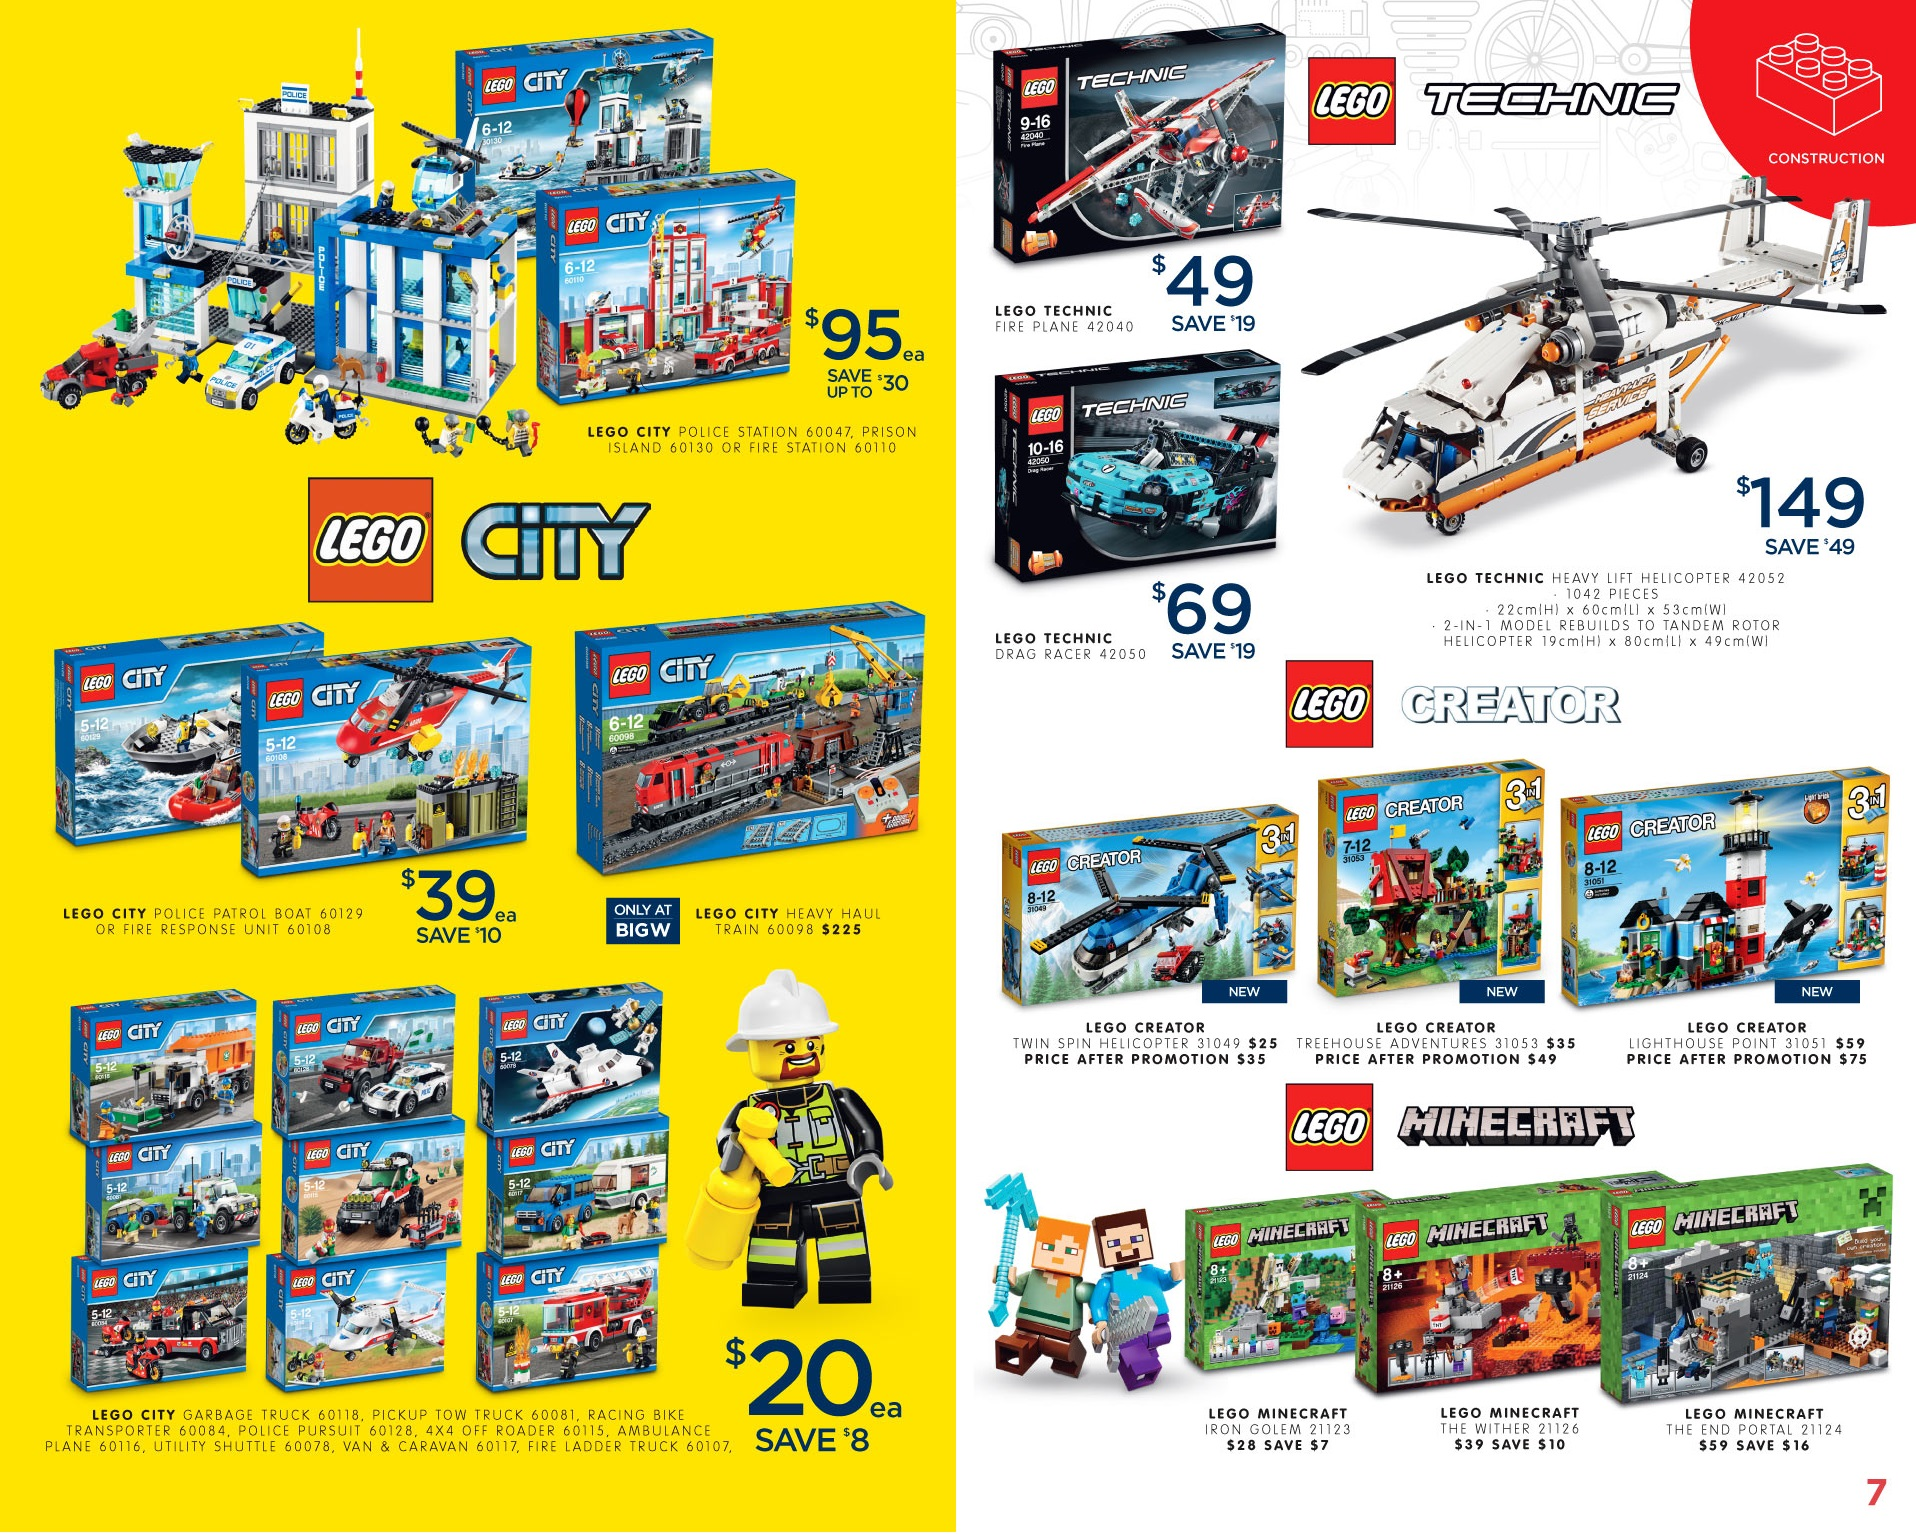 The last couple of months of the year are always exciting for LEGO fans; there are new LEGO sets, special holiday sets, promotional items, sales, and other interesting opportunities to catch the holiday spirit. Below, we will go through what we know is available for LEGO .